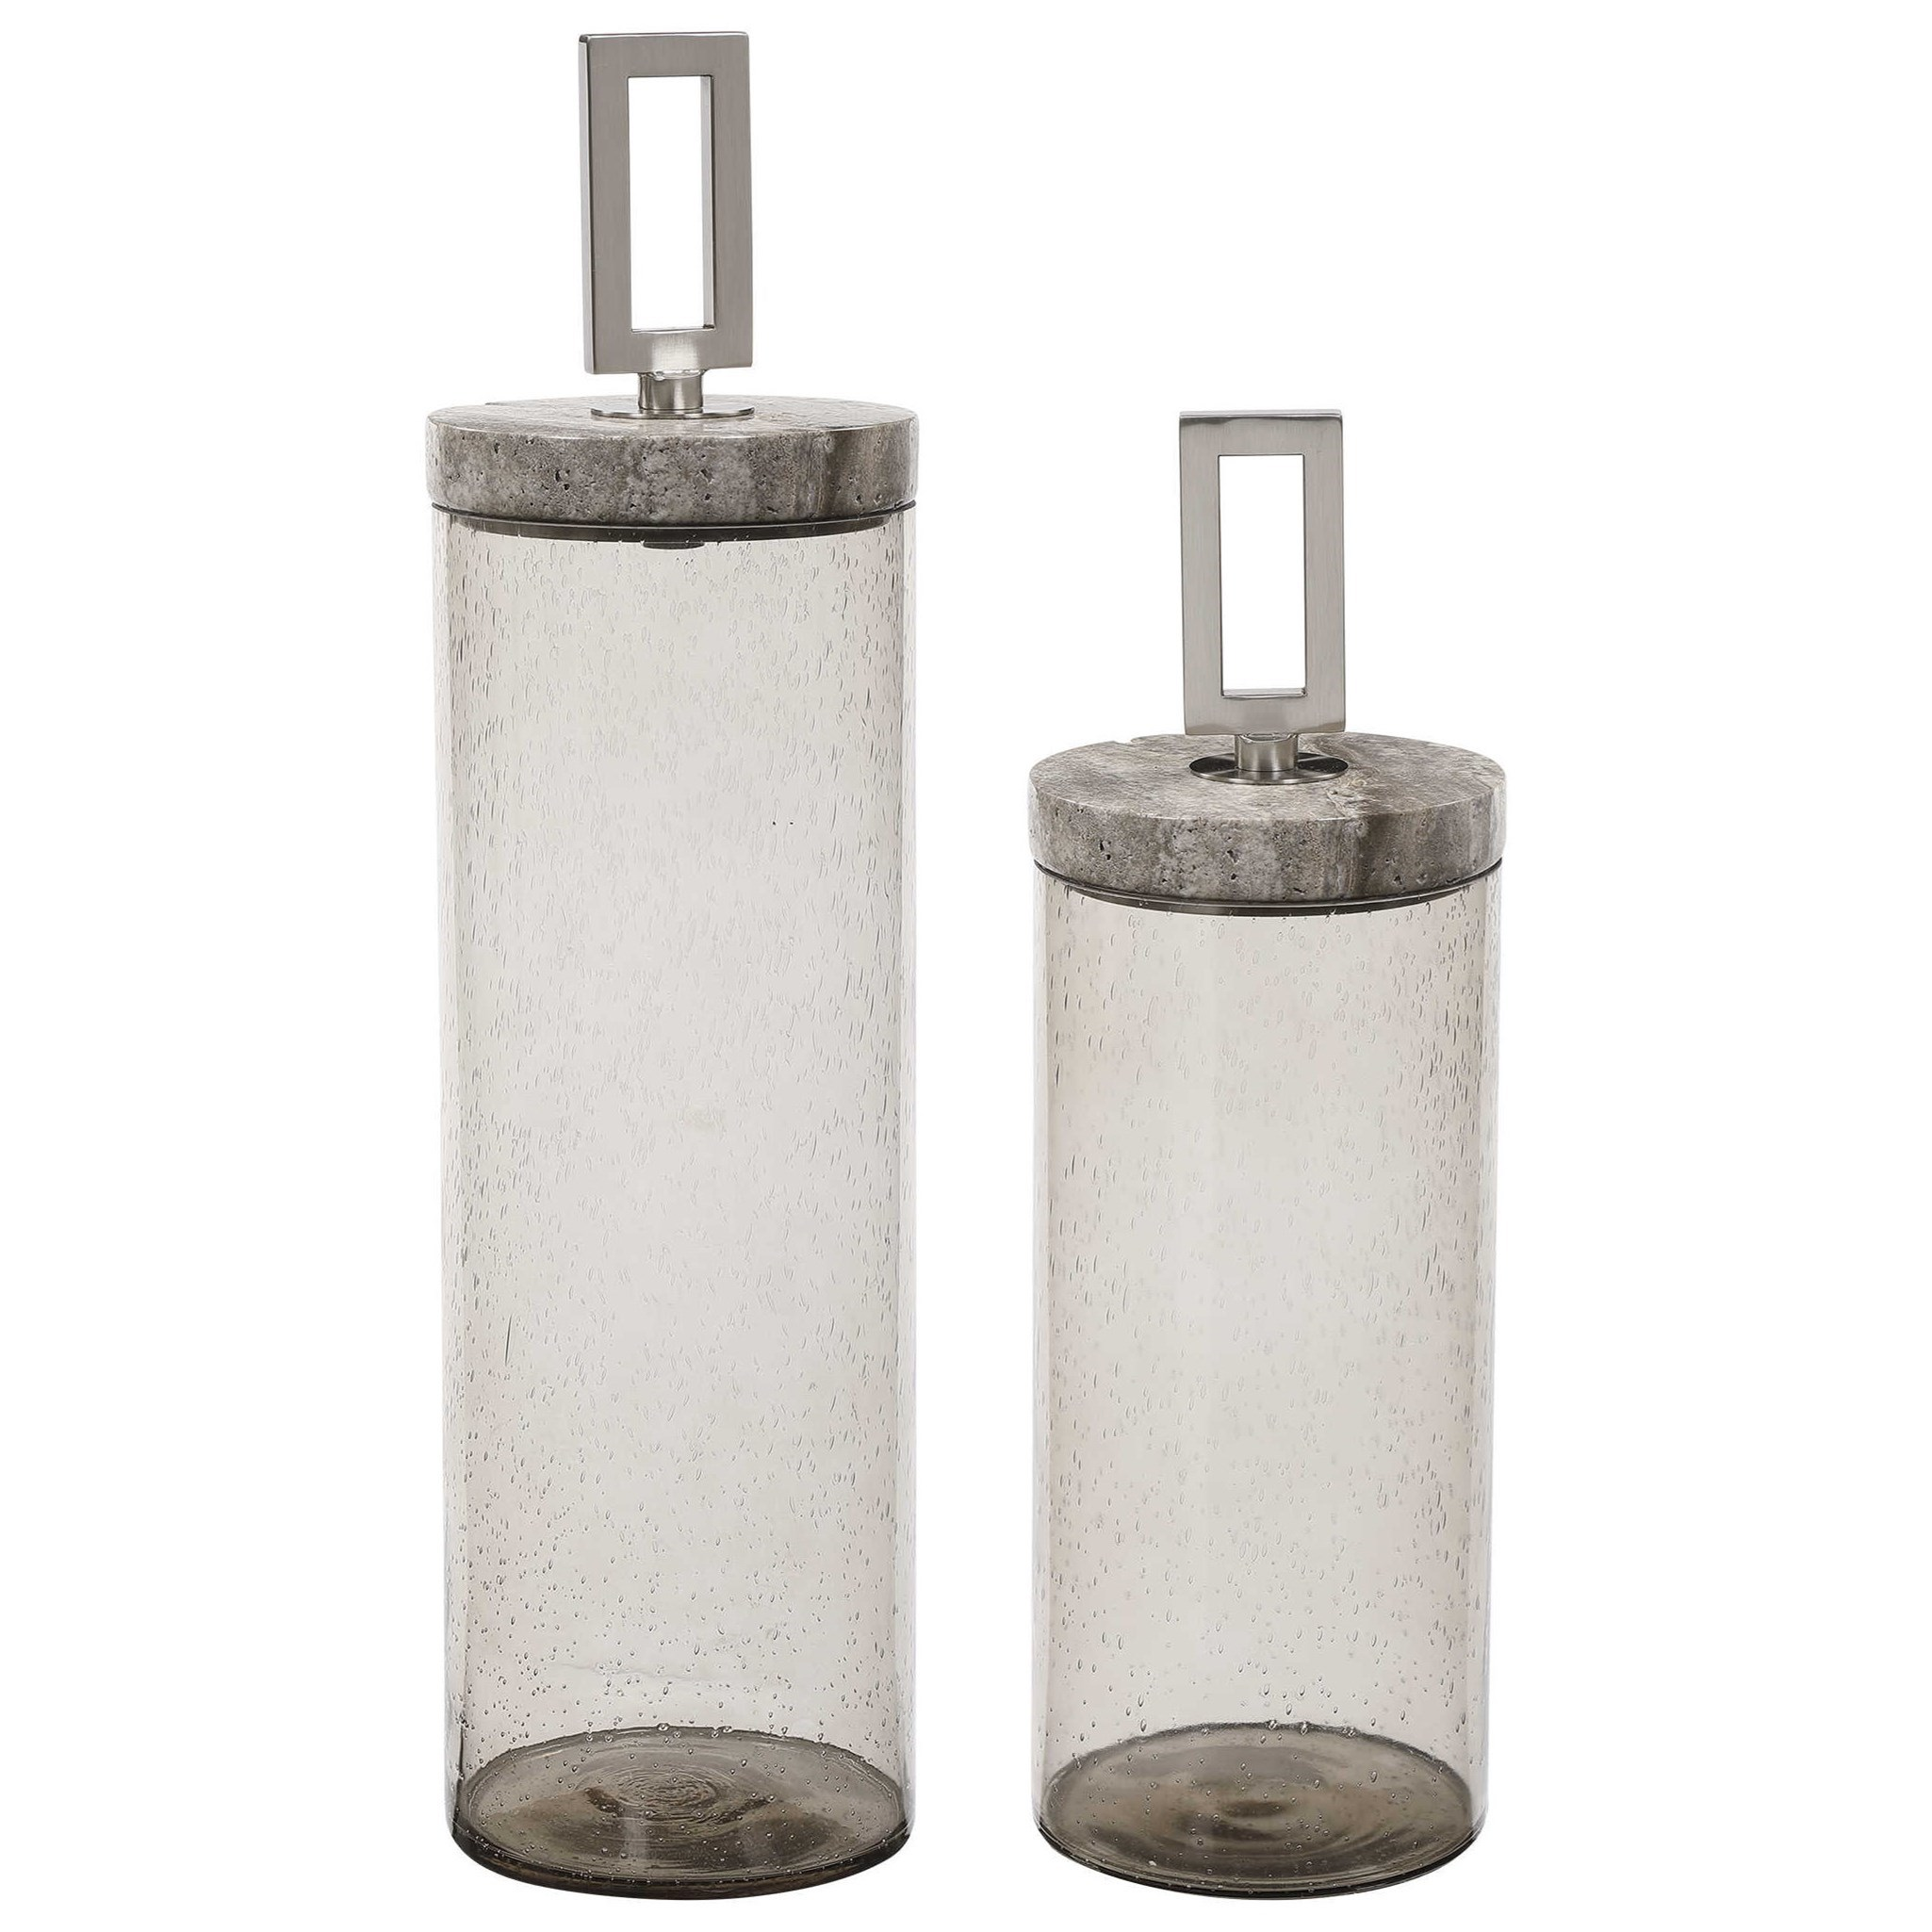 Accessories Seeded Glass Containers, S/2 by Uttermost at Dunk & Bright Furniture